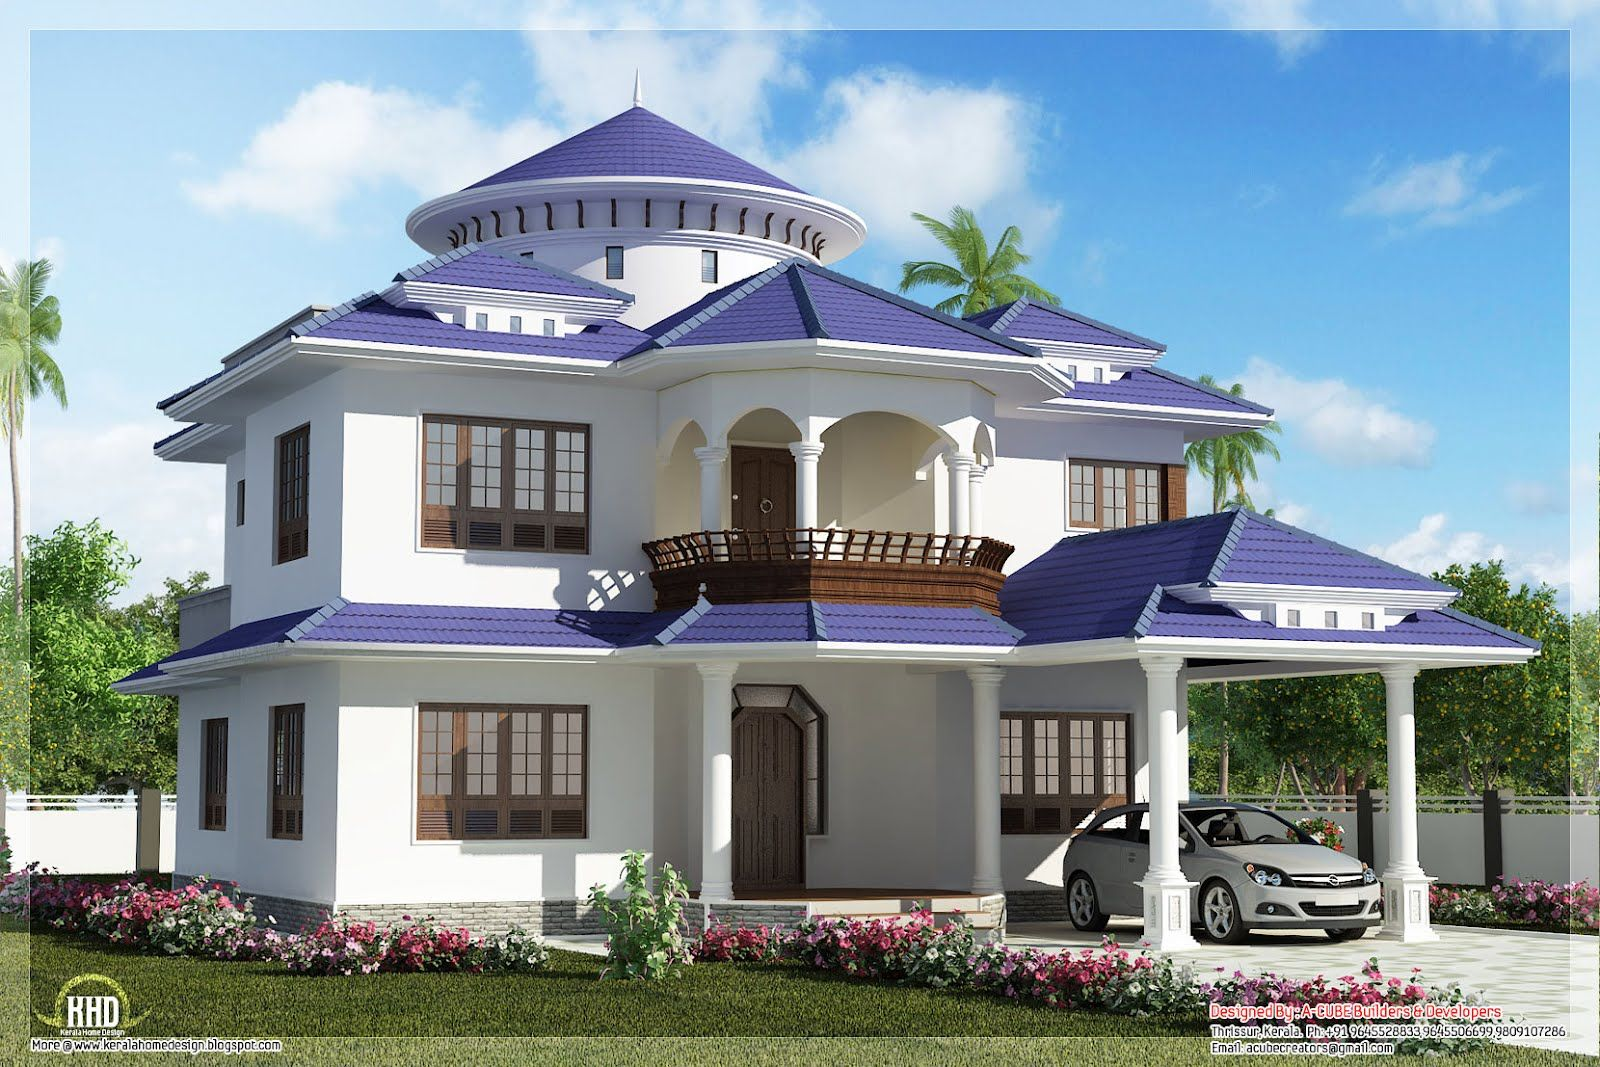 House design ideas -  Beautiful Kerala Home Sq Ft Beautiful Bathroom Designs Work Wonders Home Best Free Home Design Idea Inspiration